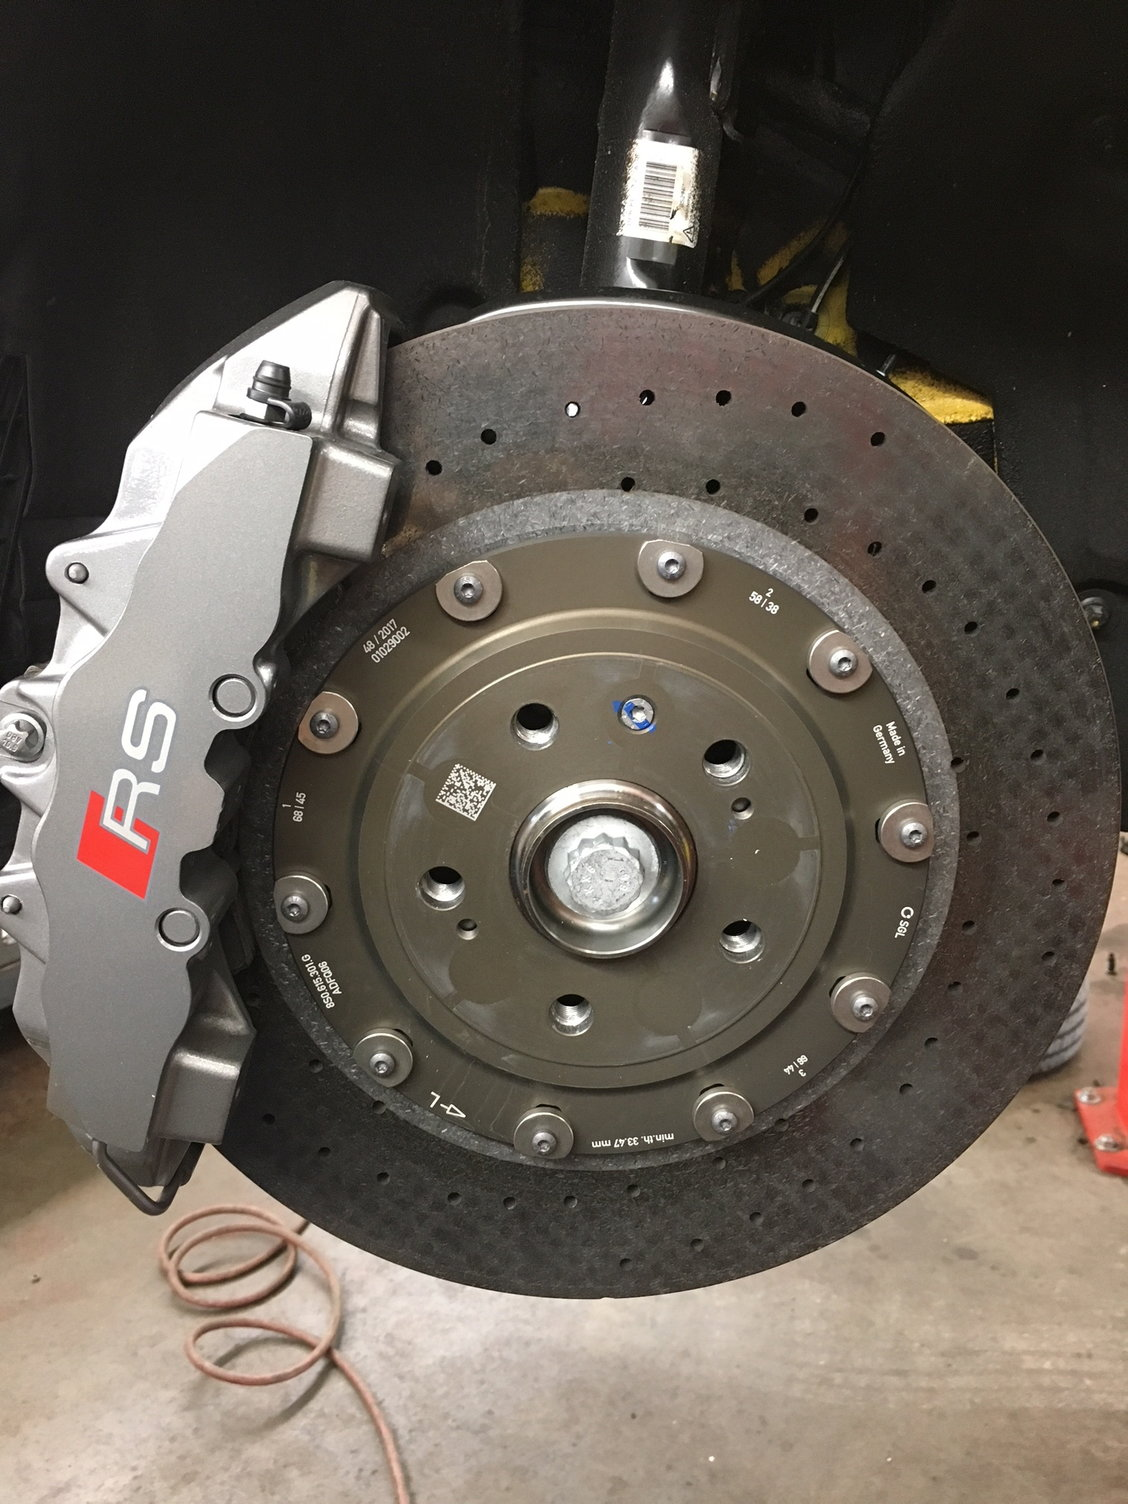 Carbon-ceramic brakes: Warning and Rant - AudiWorld Forums